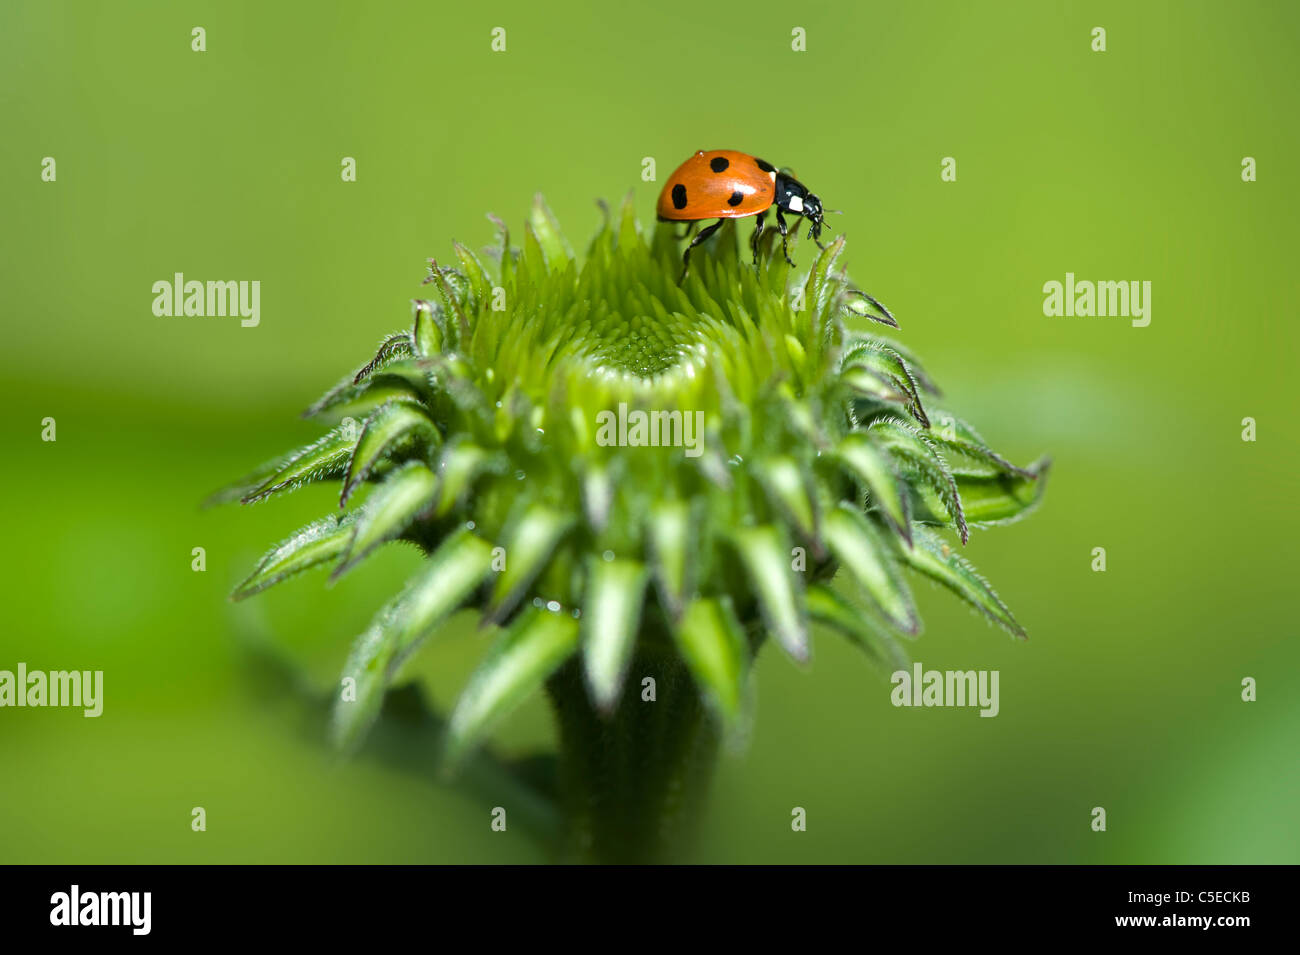 Close-up image of a Seven-spot Ladybird - Coccinella septempunctata on the bud of a purple coneflower - Echinacea - Stock Image